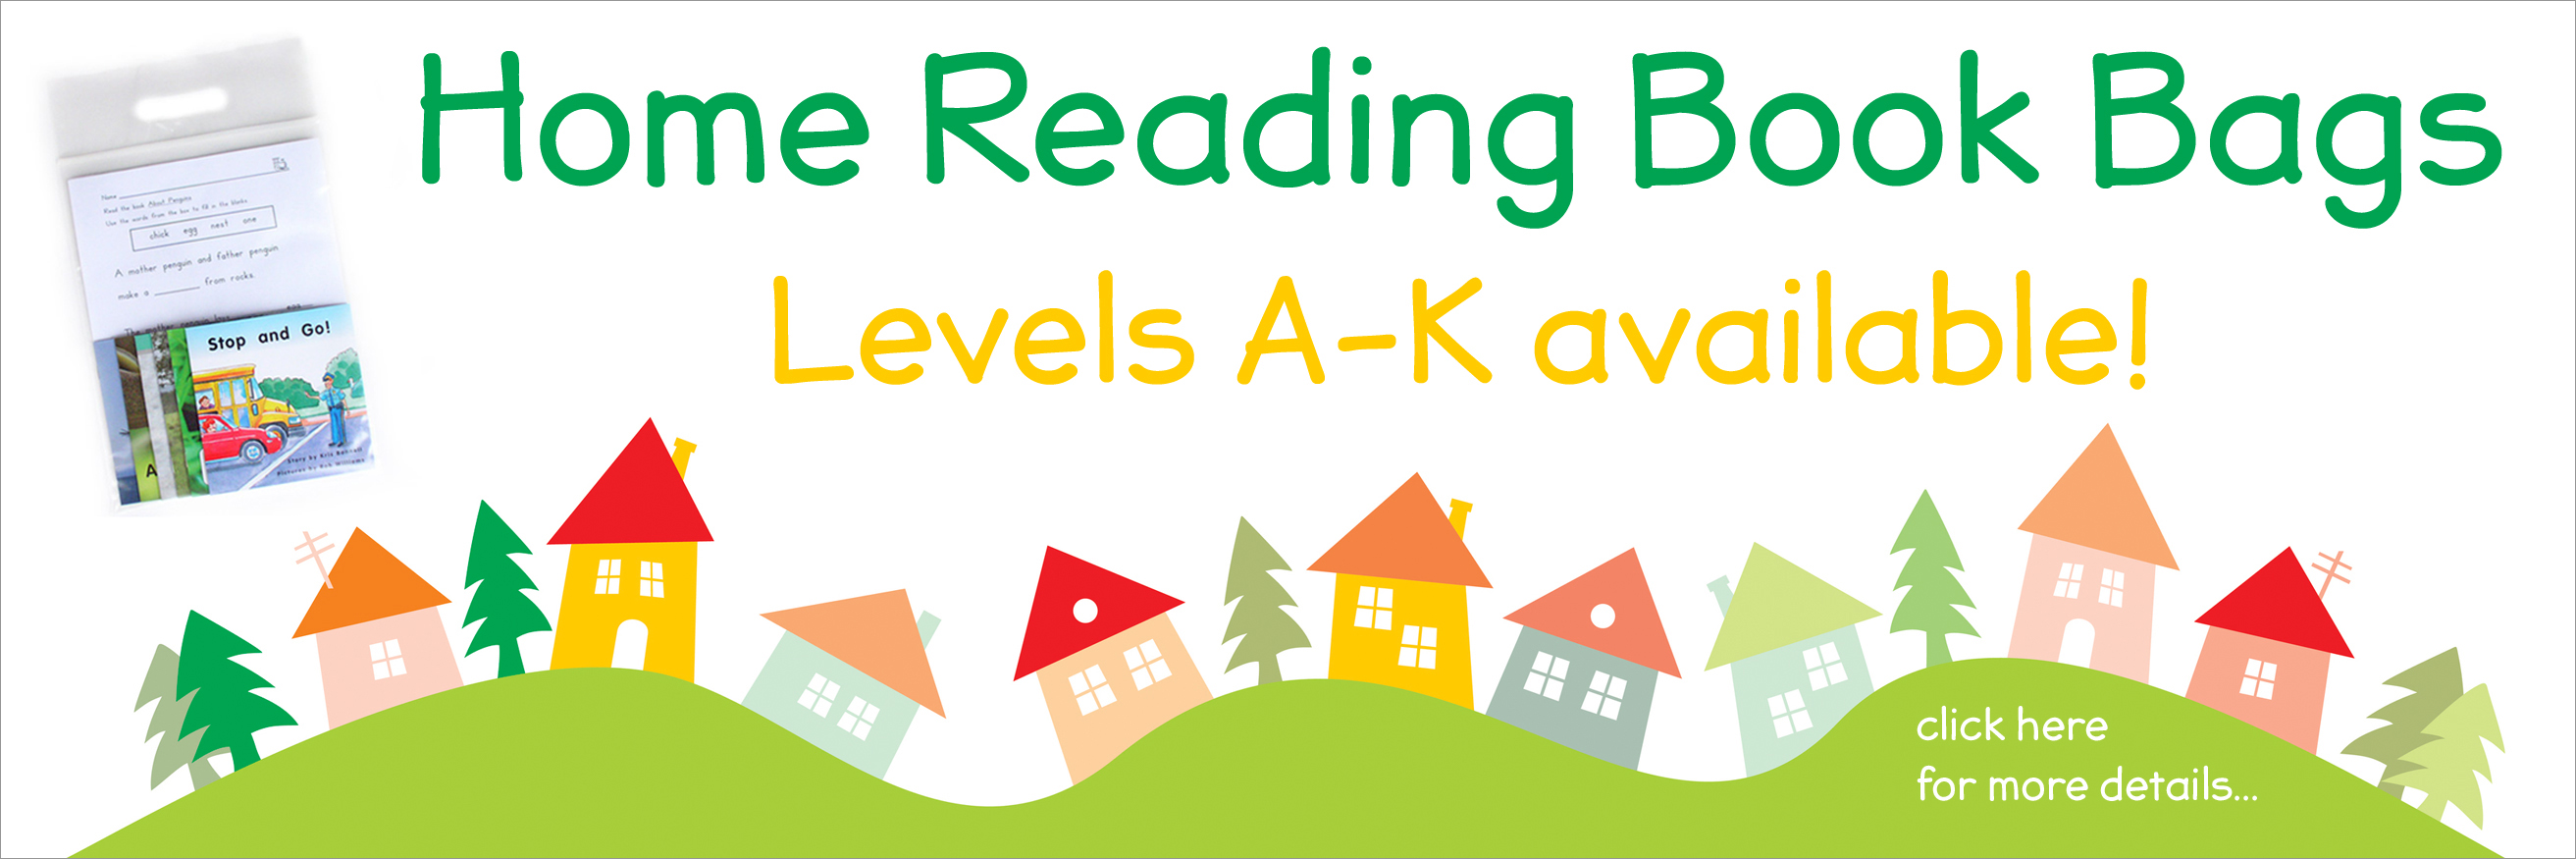 Banner:  Home Reading Book Bags Levels A-K available. Click here for more details!